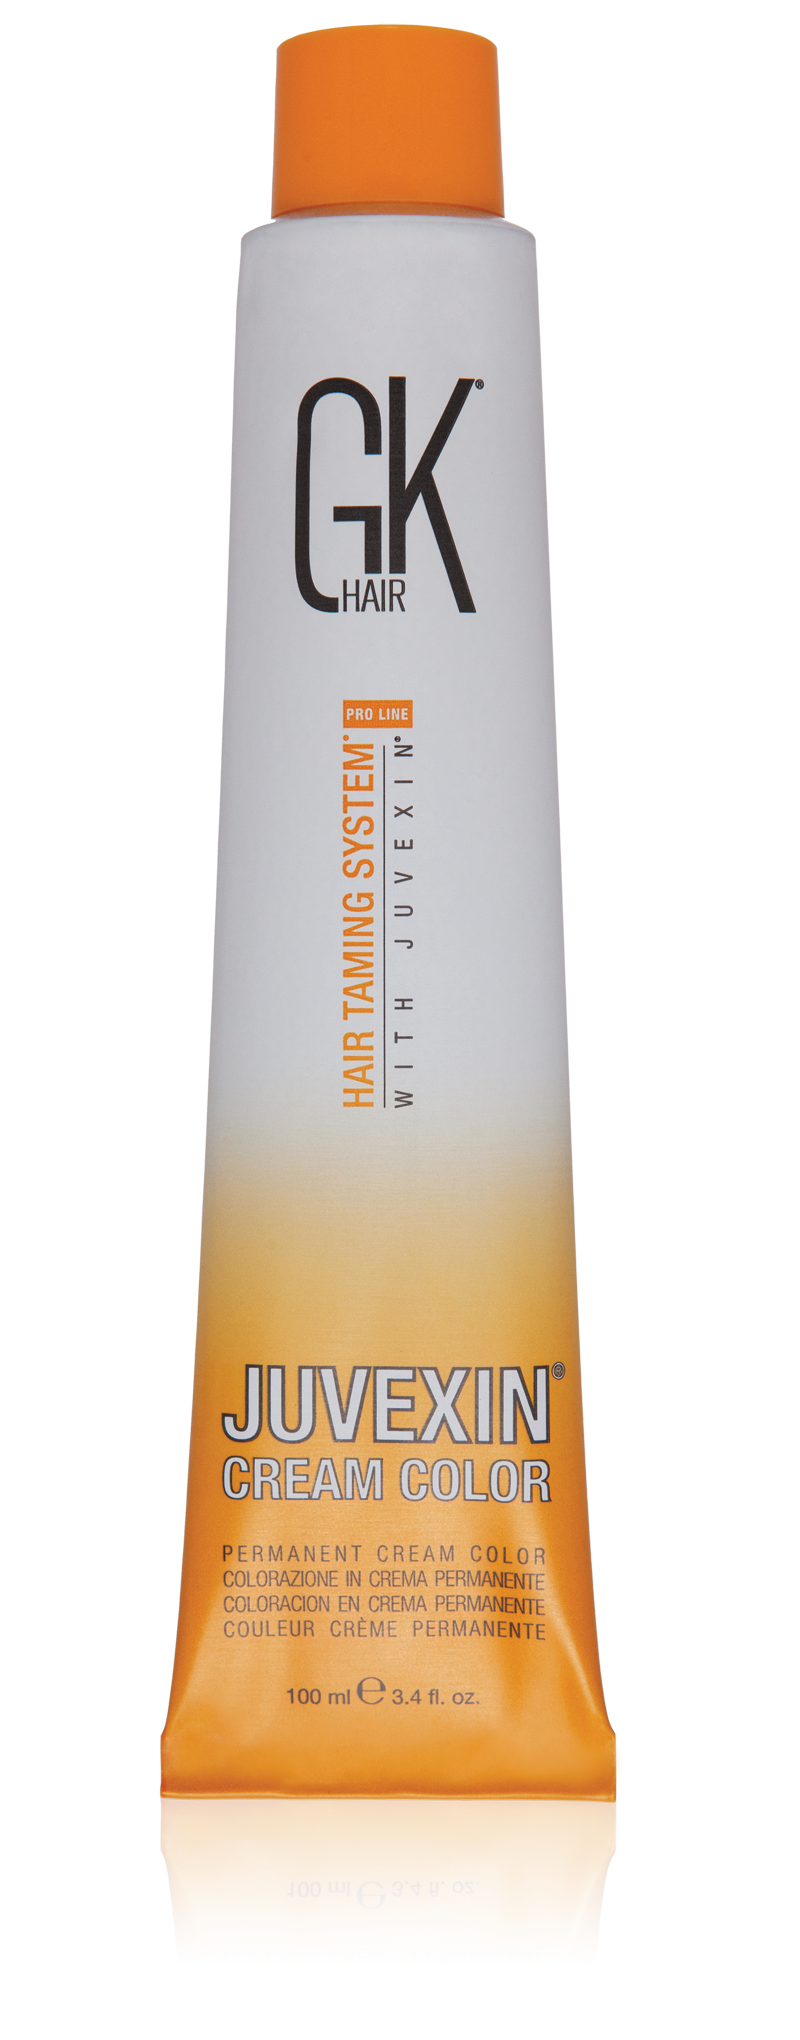 Juvexin_Cream_Color